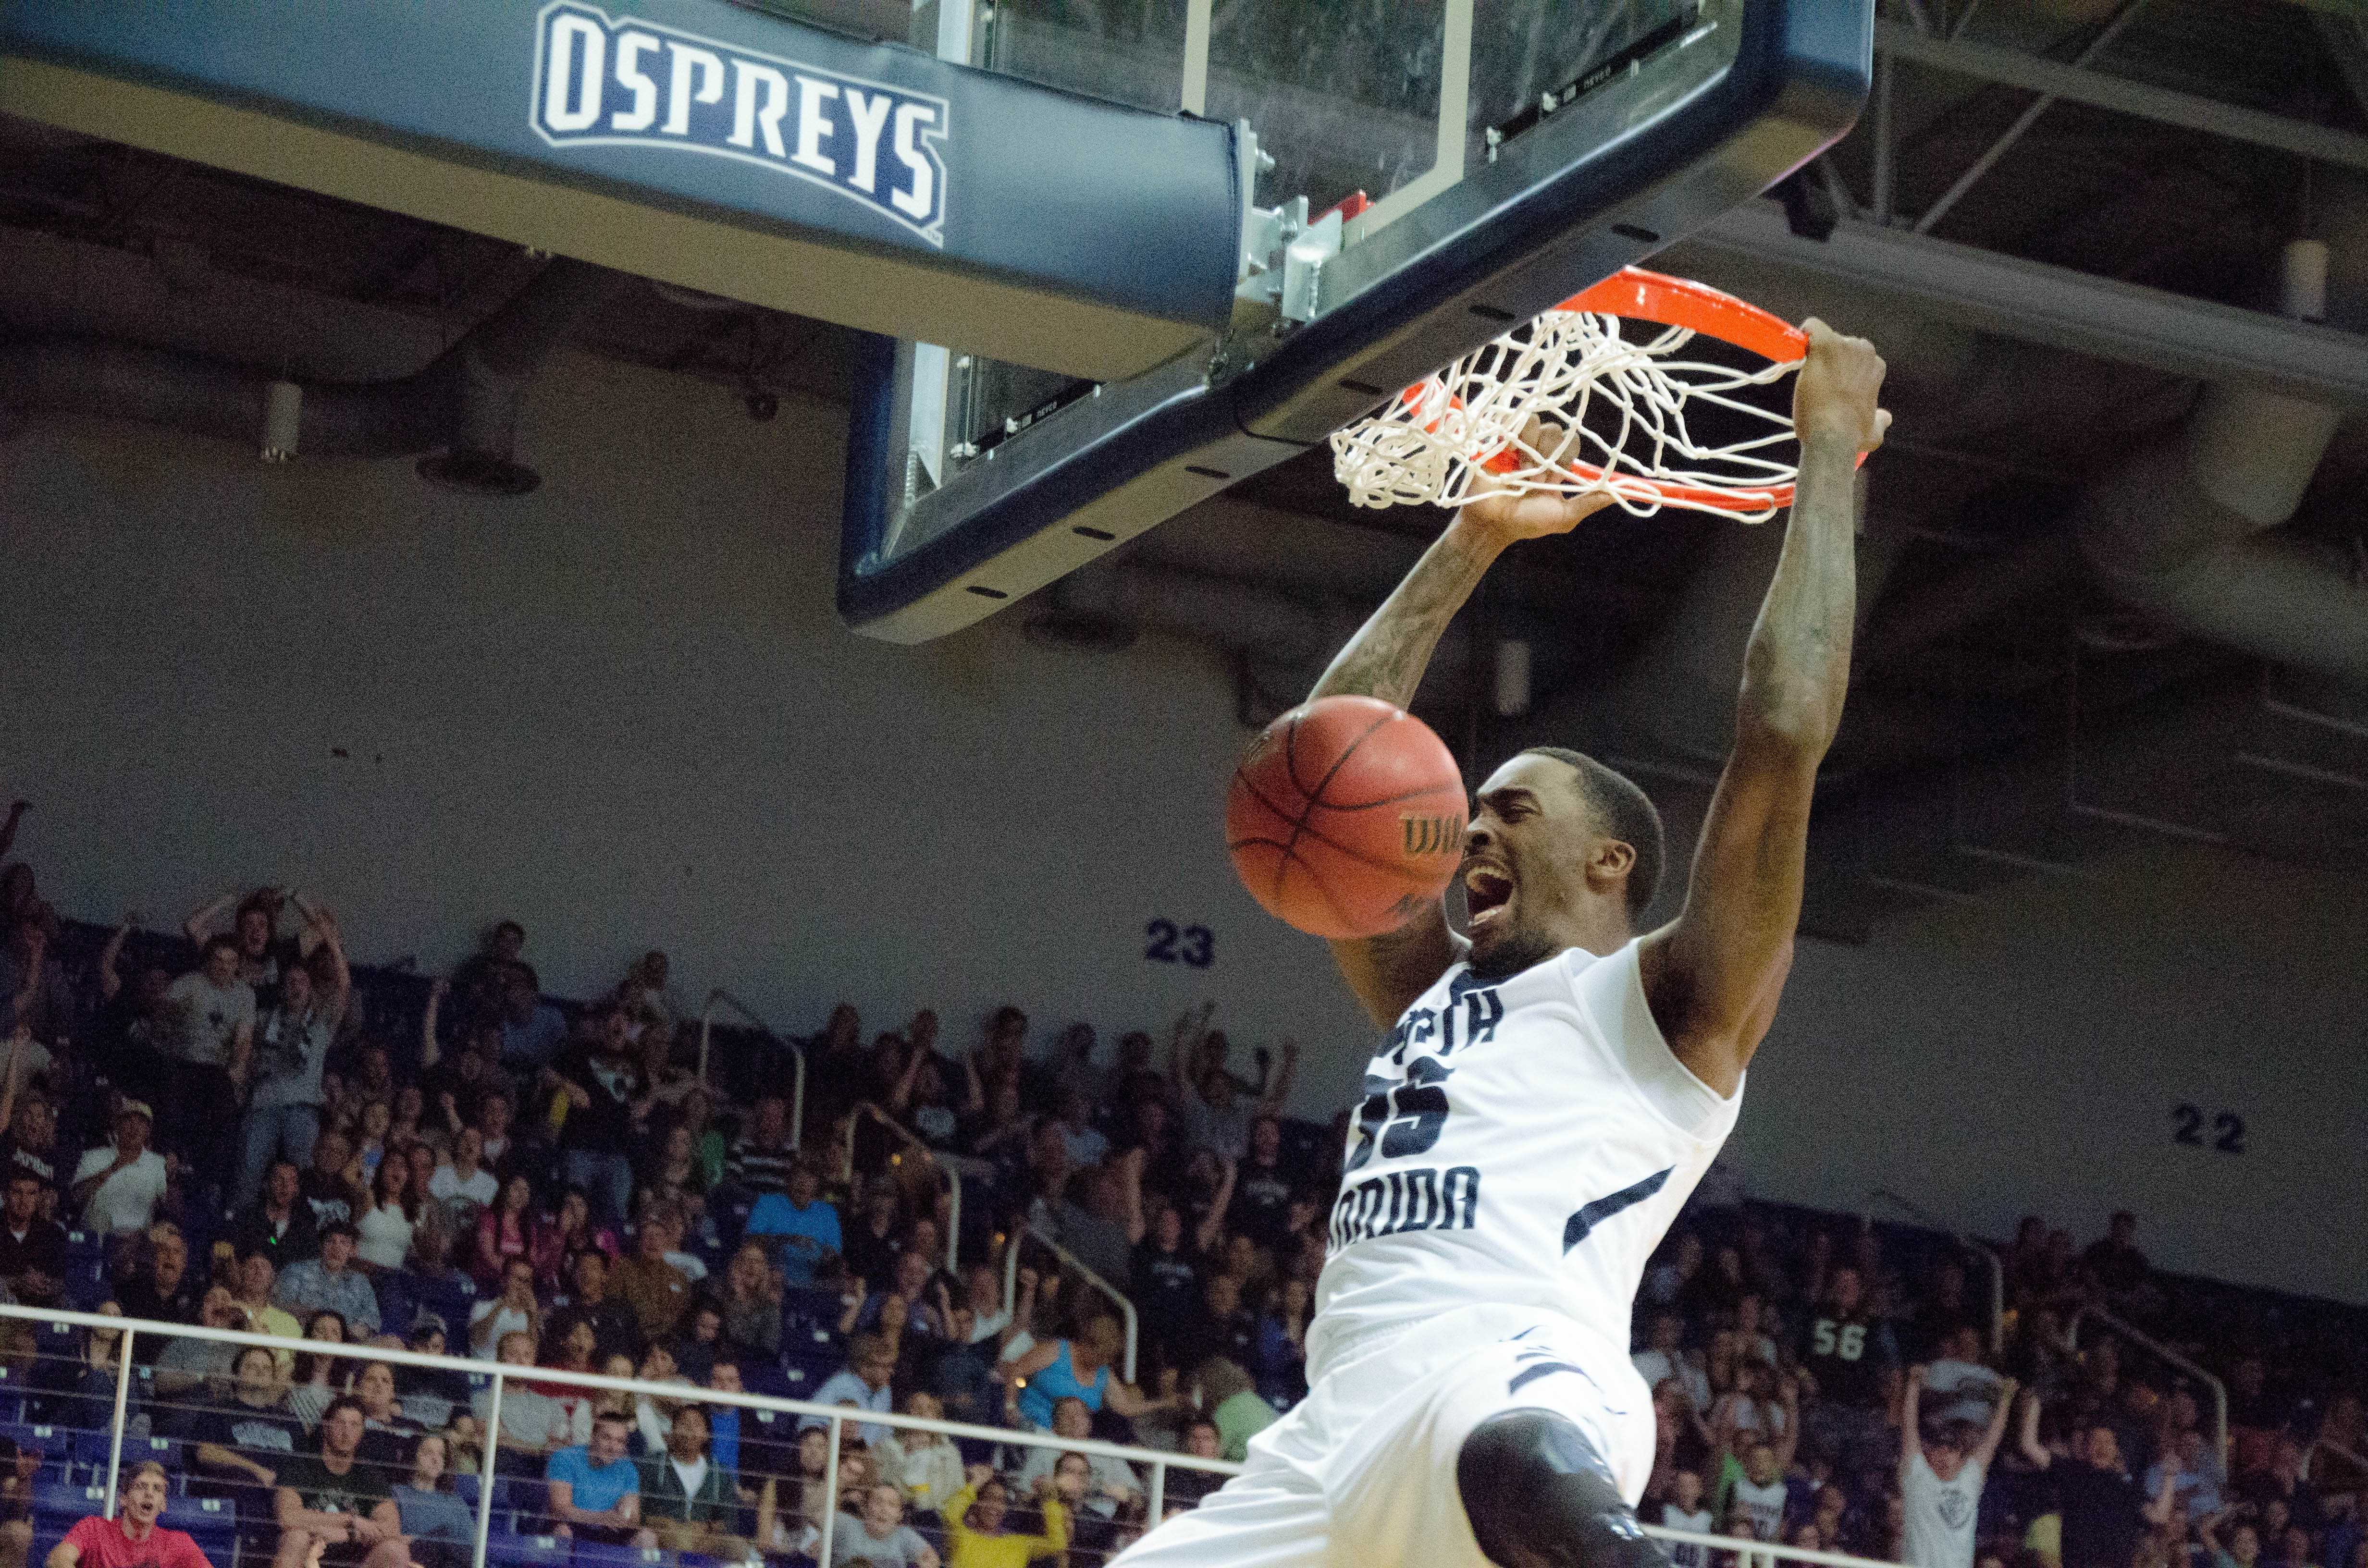 Men's basketball advance to the semifinals